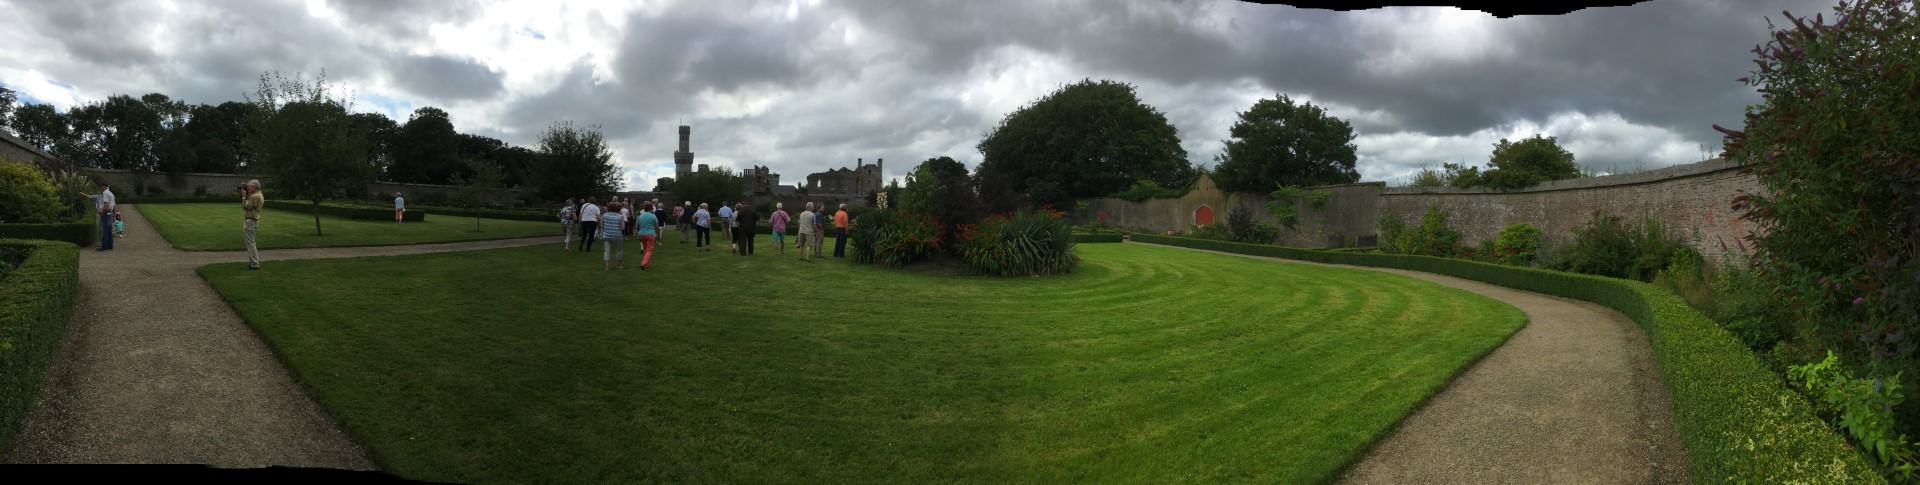 Bannow Historical Society Annual Duckets Grove Carlow Tour 2017 7